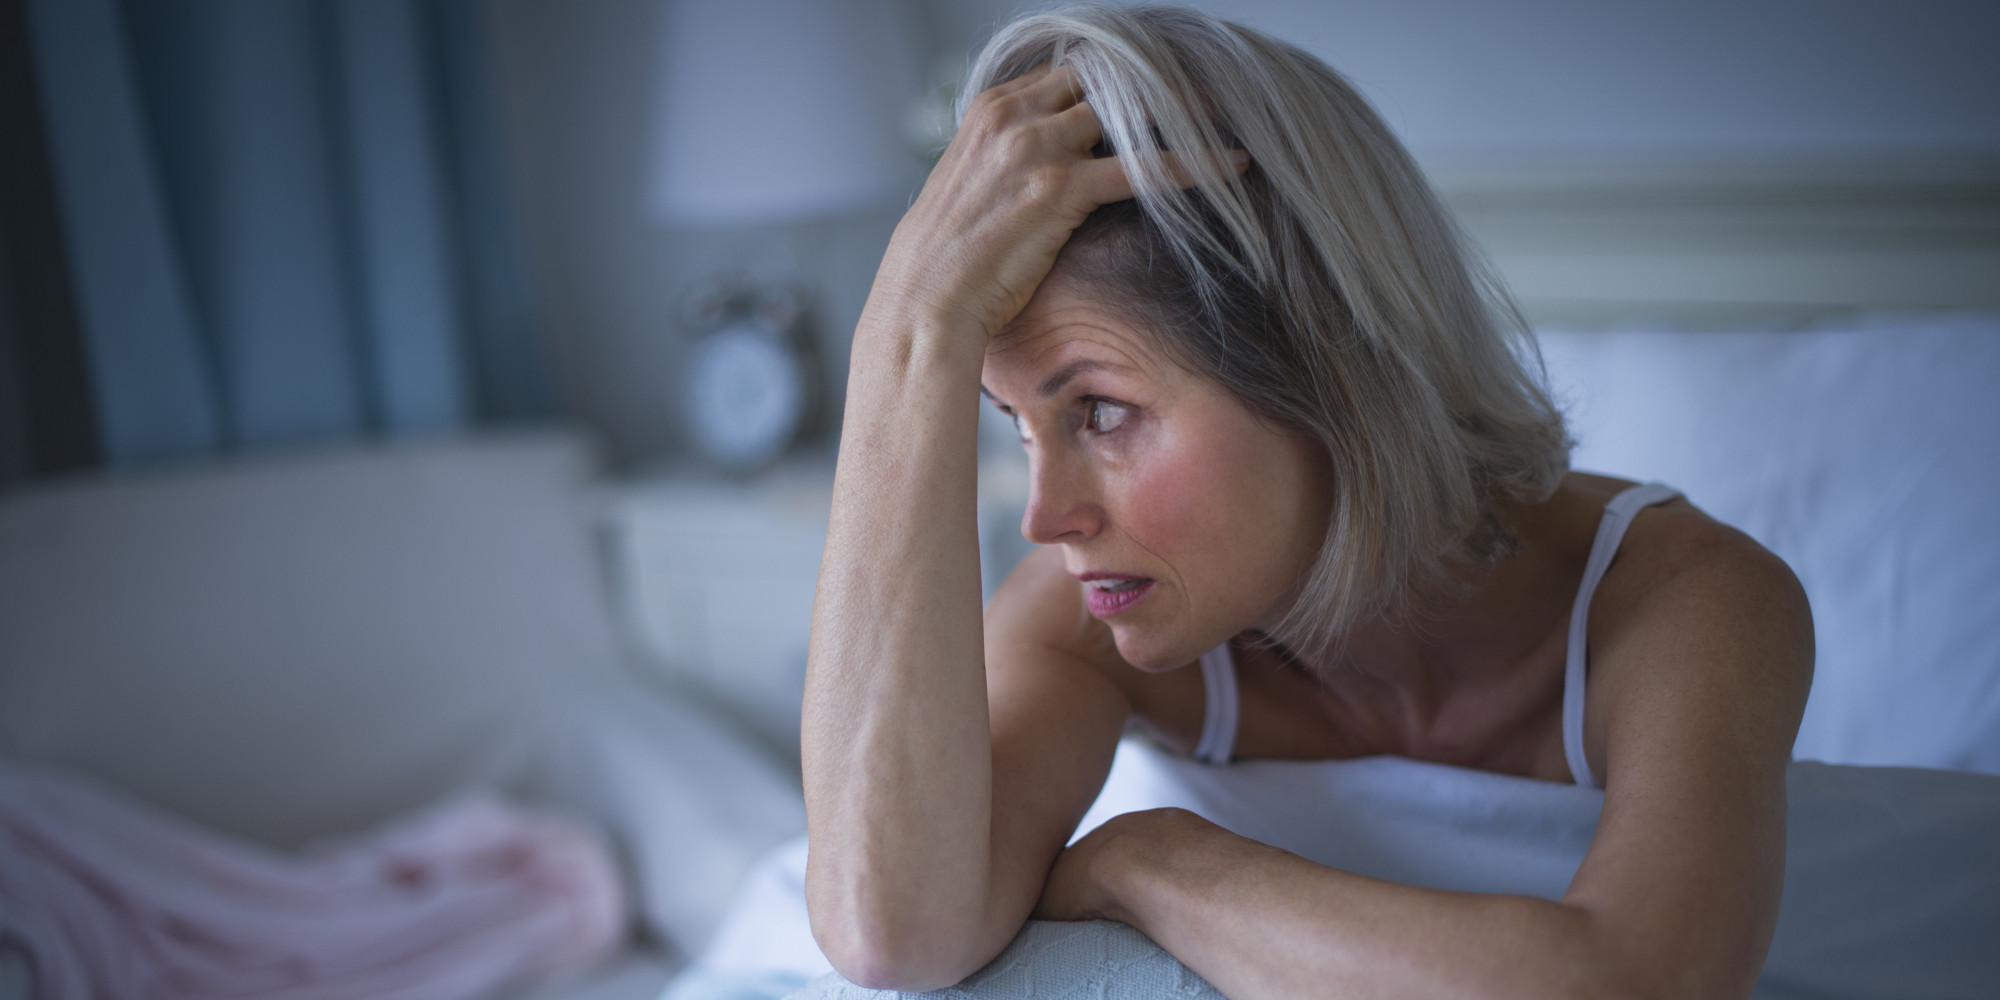 Sleep Troubles In Middle Age Tied To Dissatisfaction With Life, Study Finds The Huffington Post